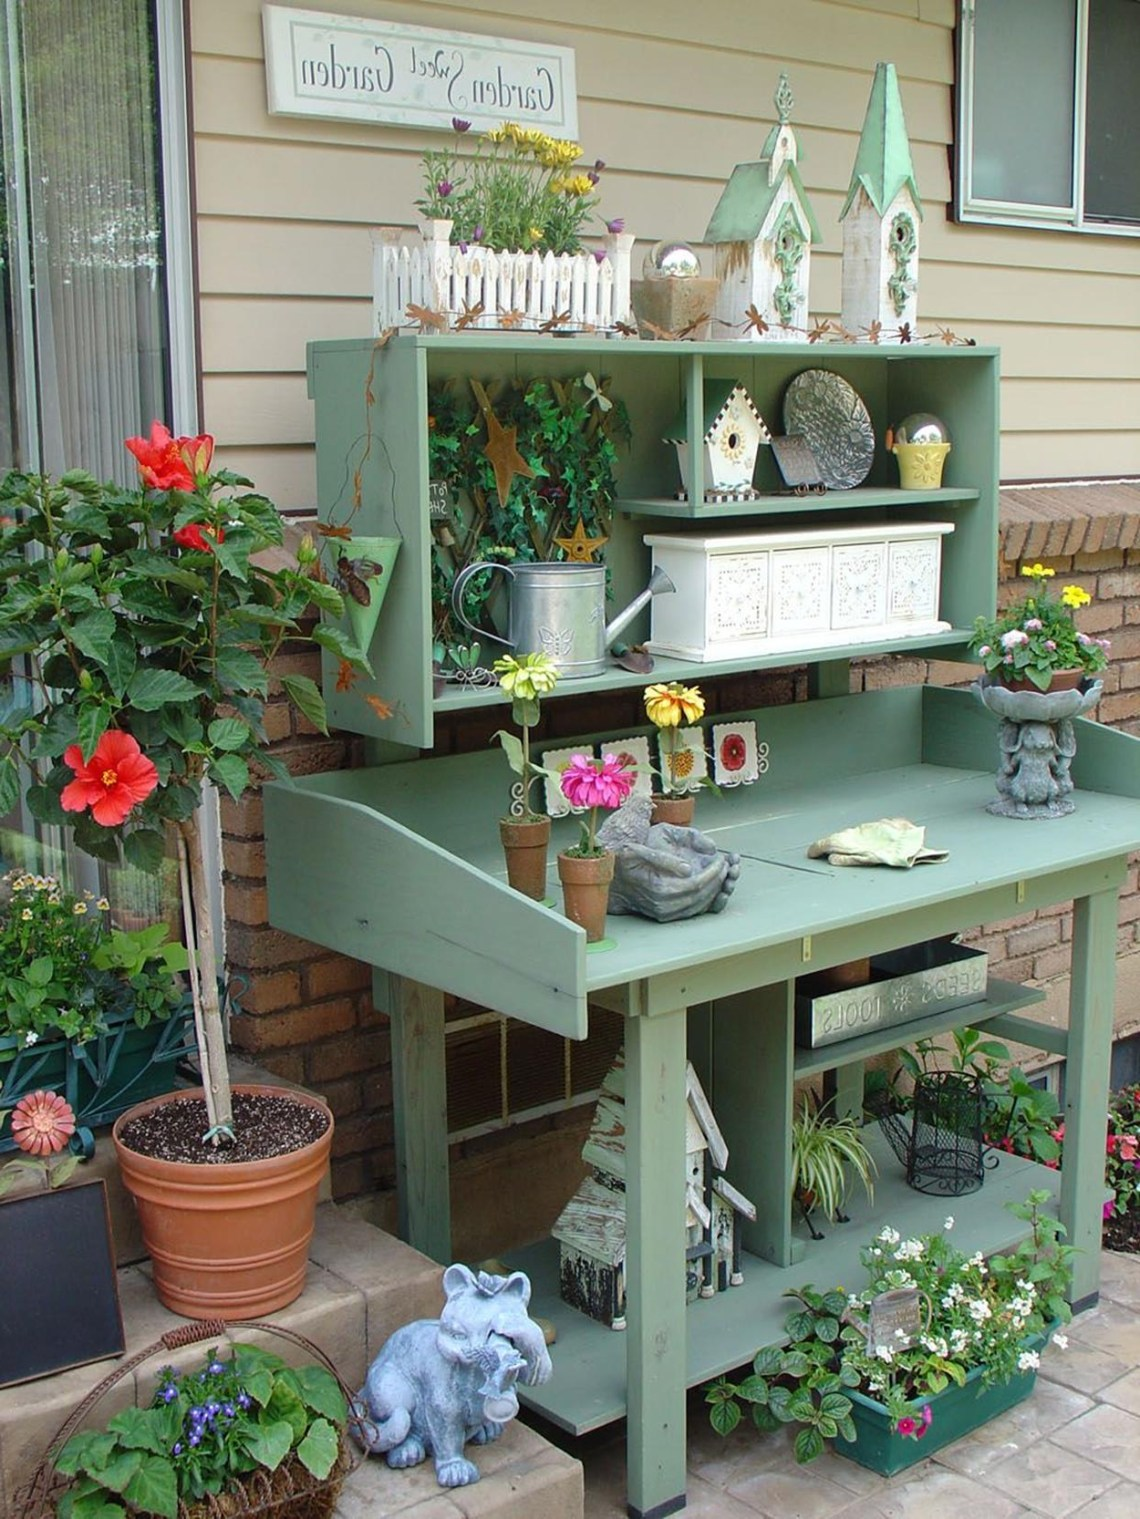 38 Charming Outdoor Garden Potting Bench Design Ideas Decorelated